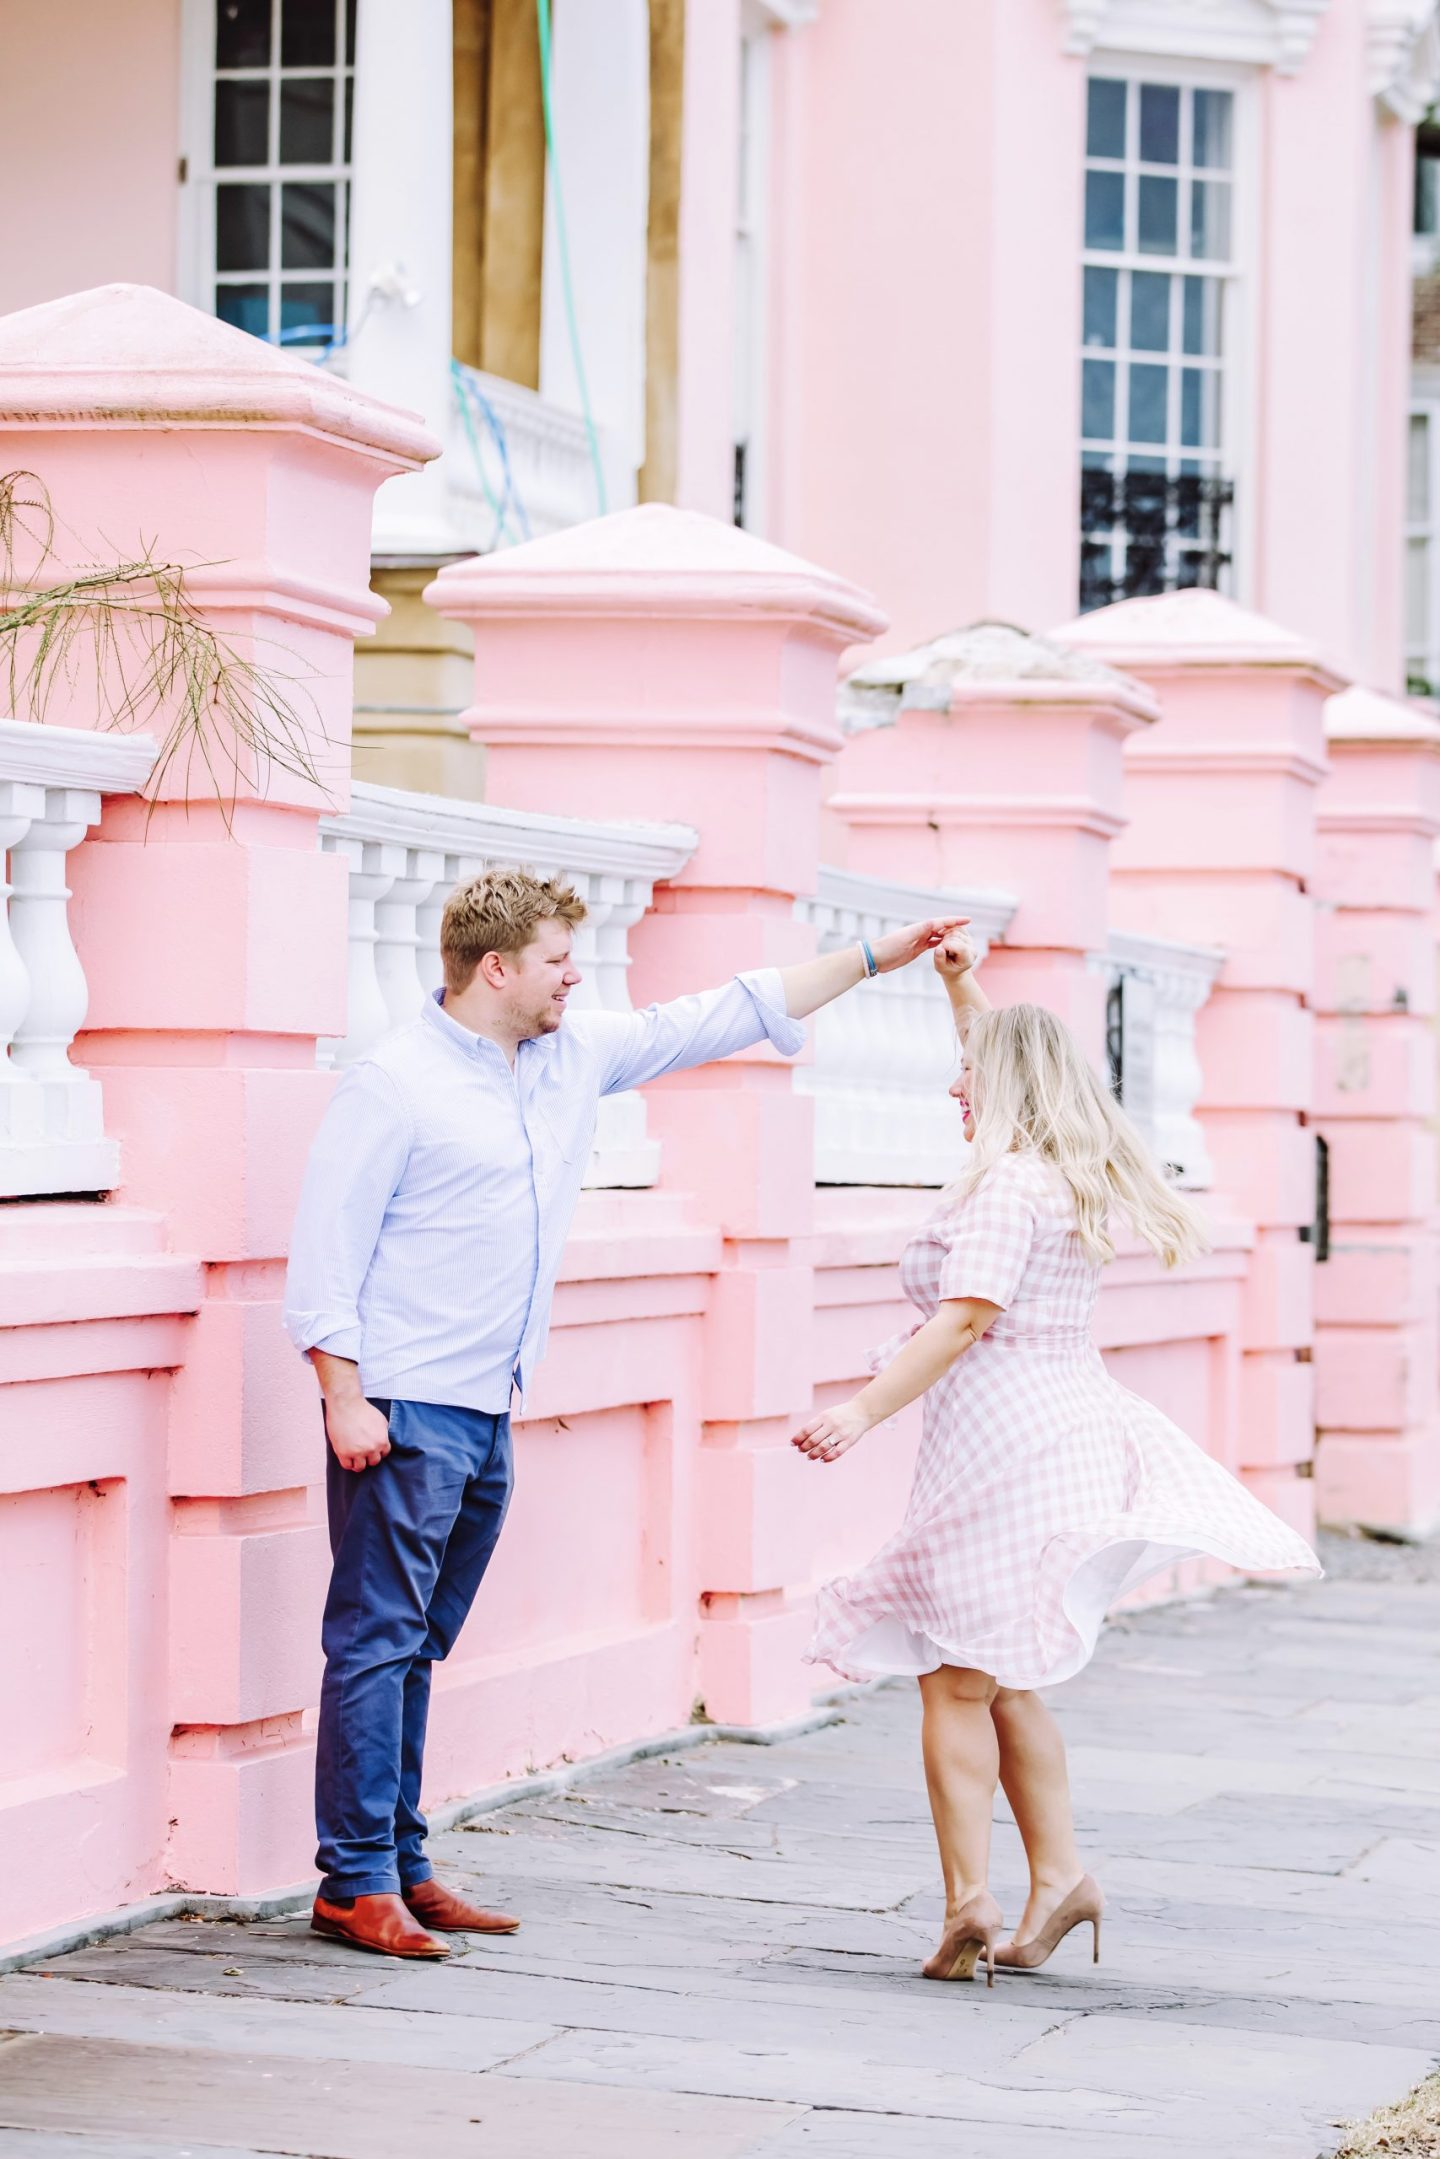 Spring Photo Shoot Outfit Ideas for Him and Her